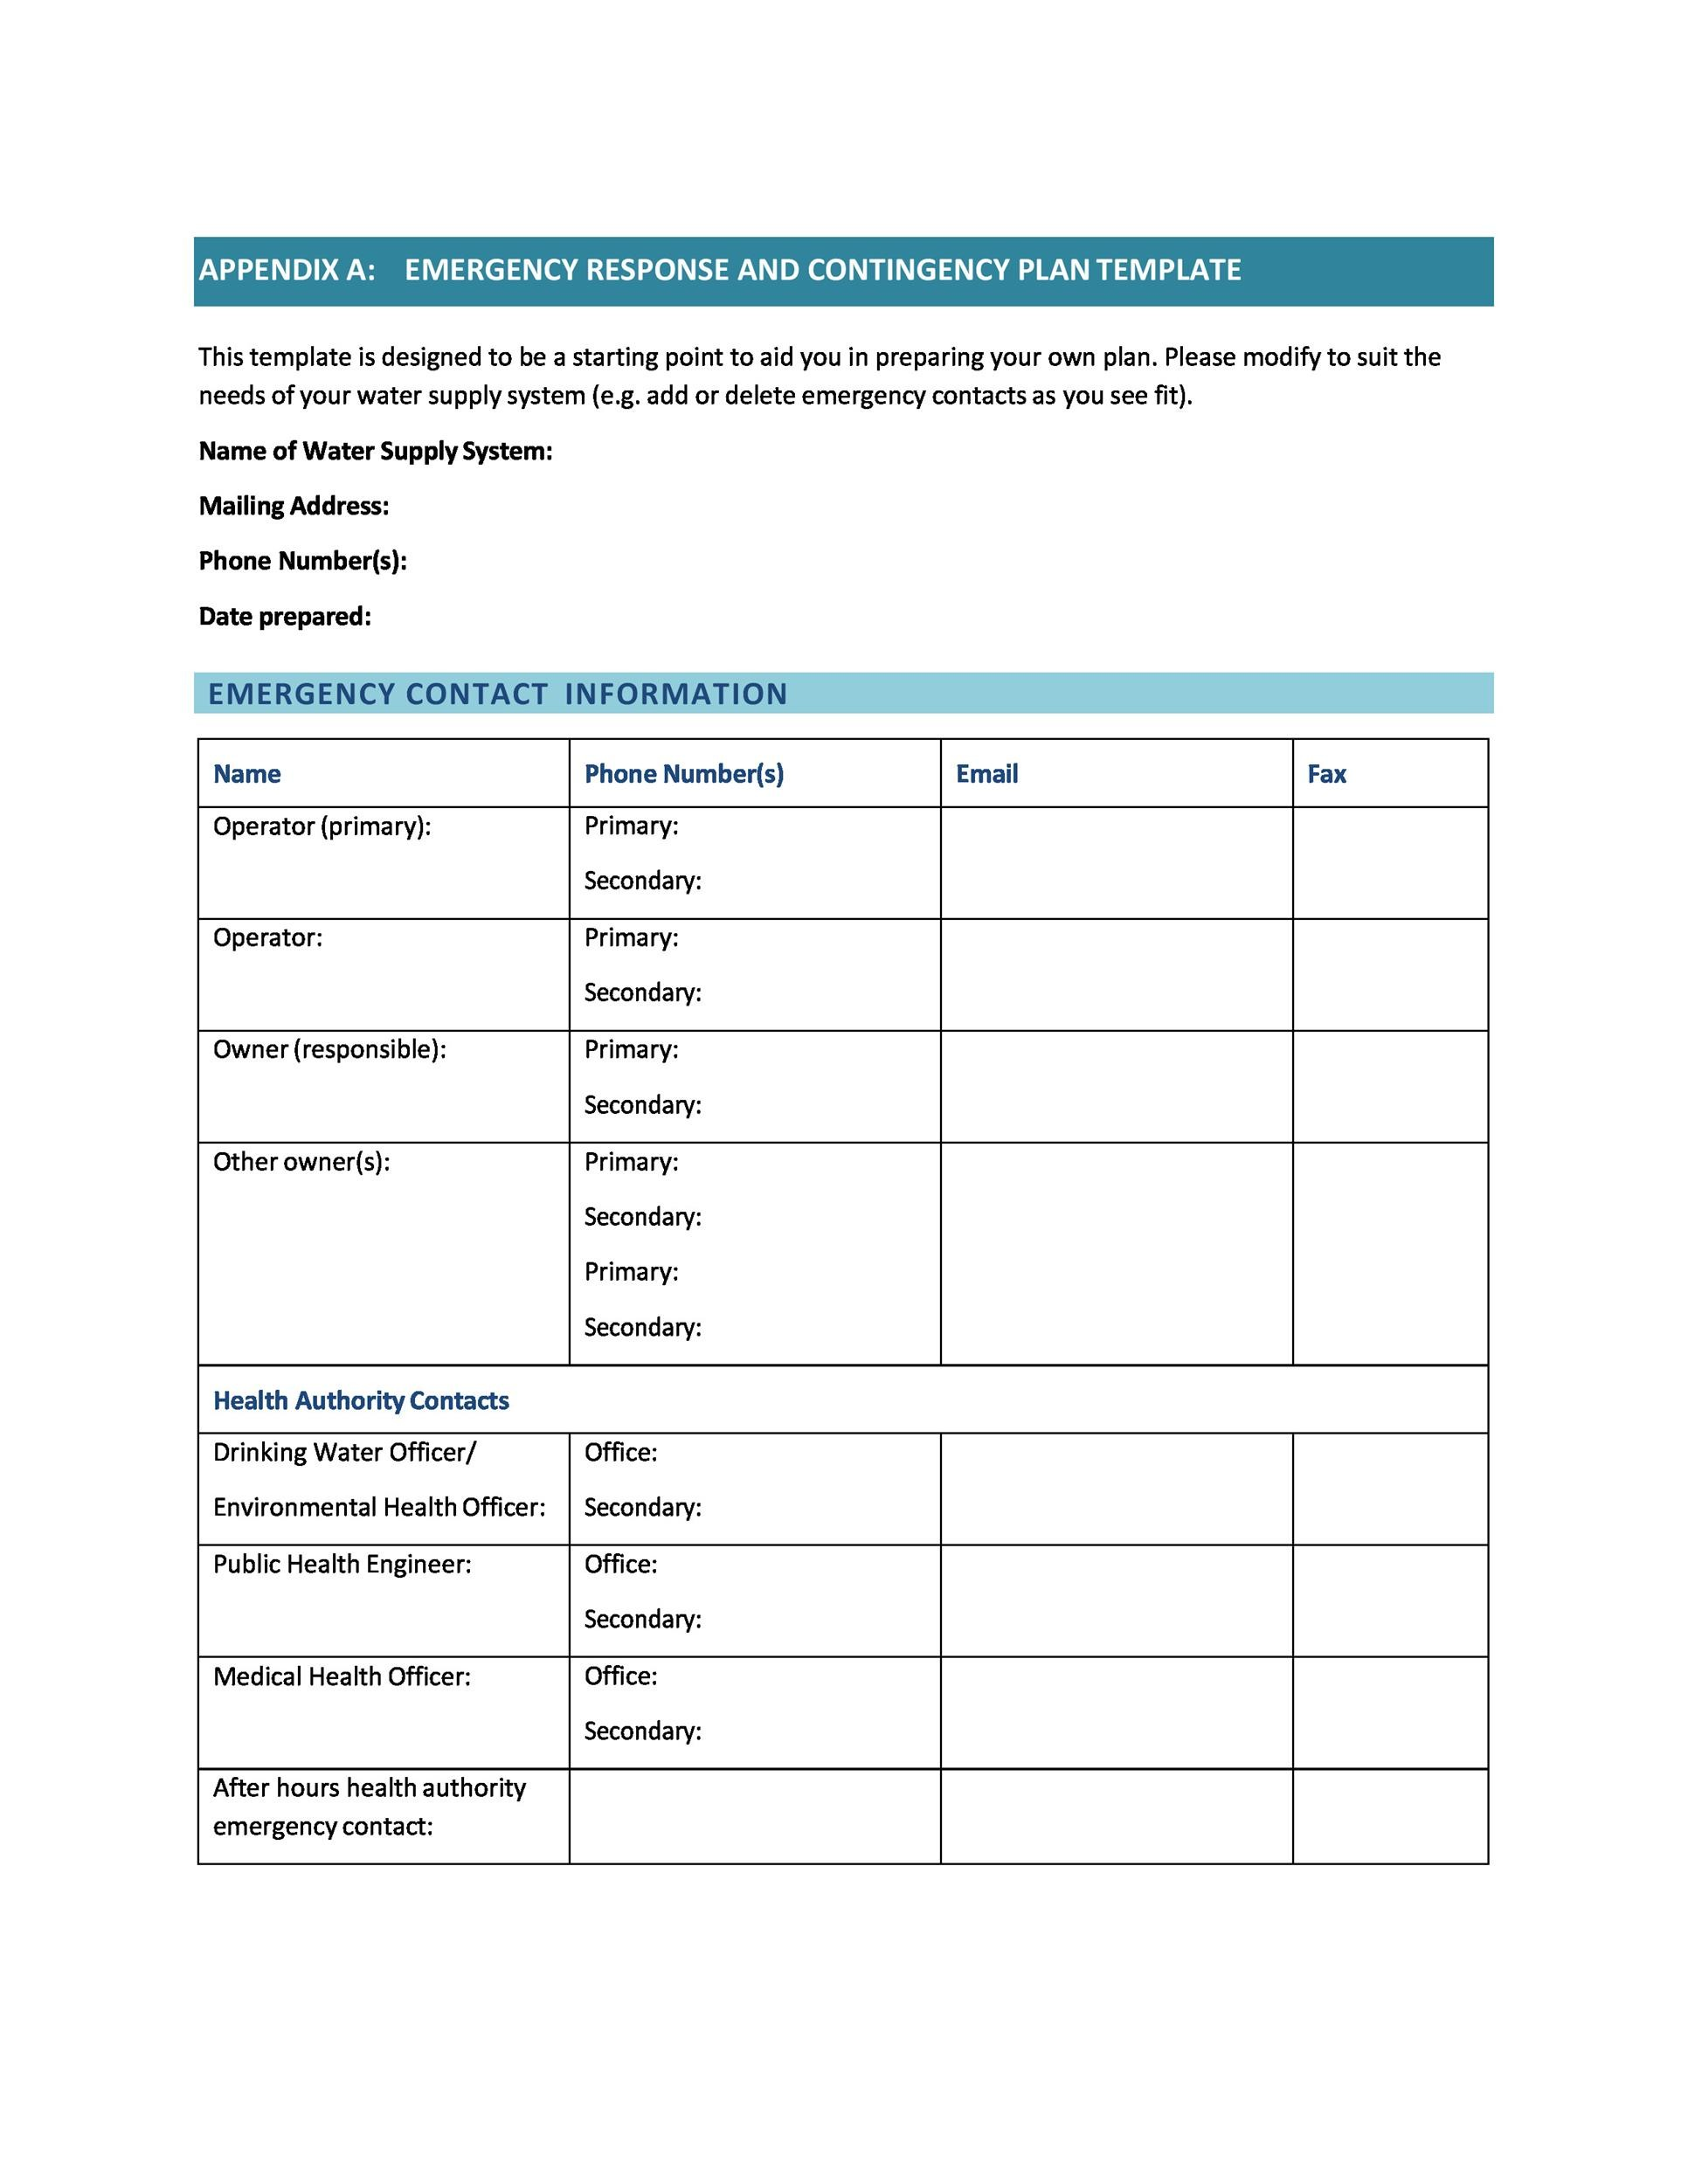 40 Detailed Contingency Plan Examples Free Templates ᐅ